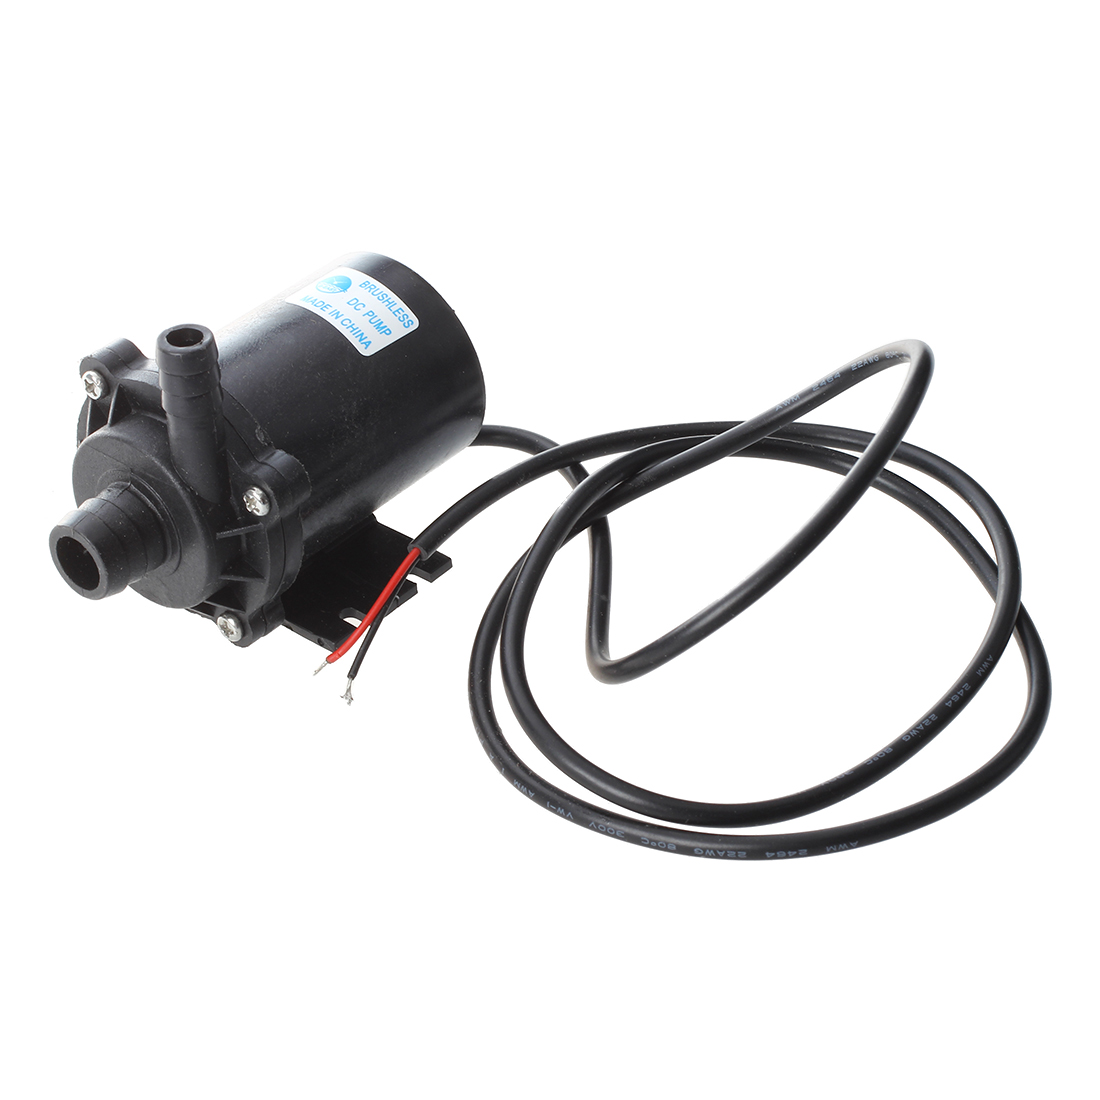 DSHA New Hot Submersible Water Pump for Fountain Pond Brushless 24V 540LPH